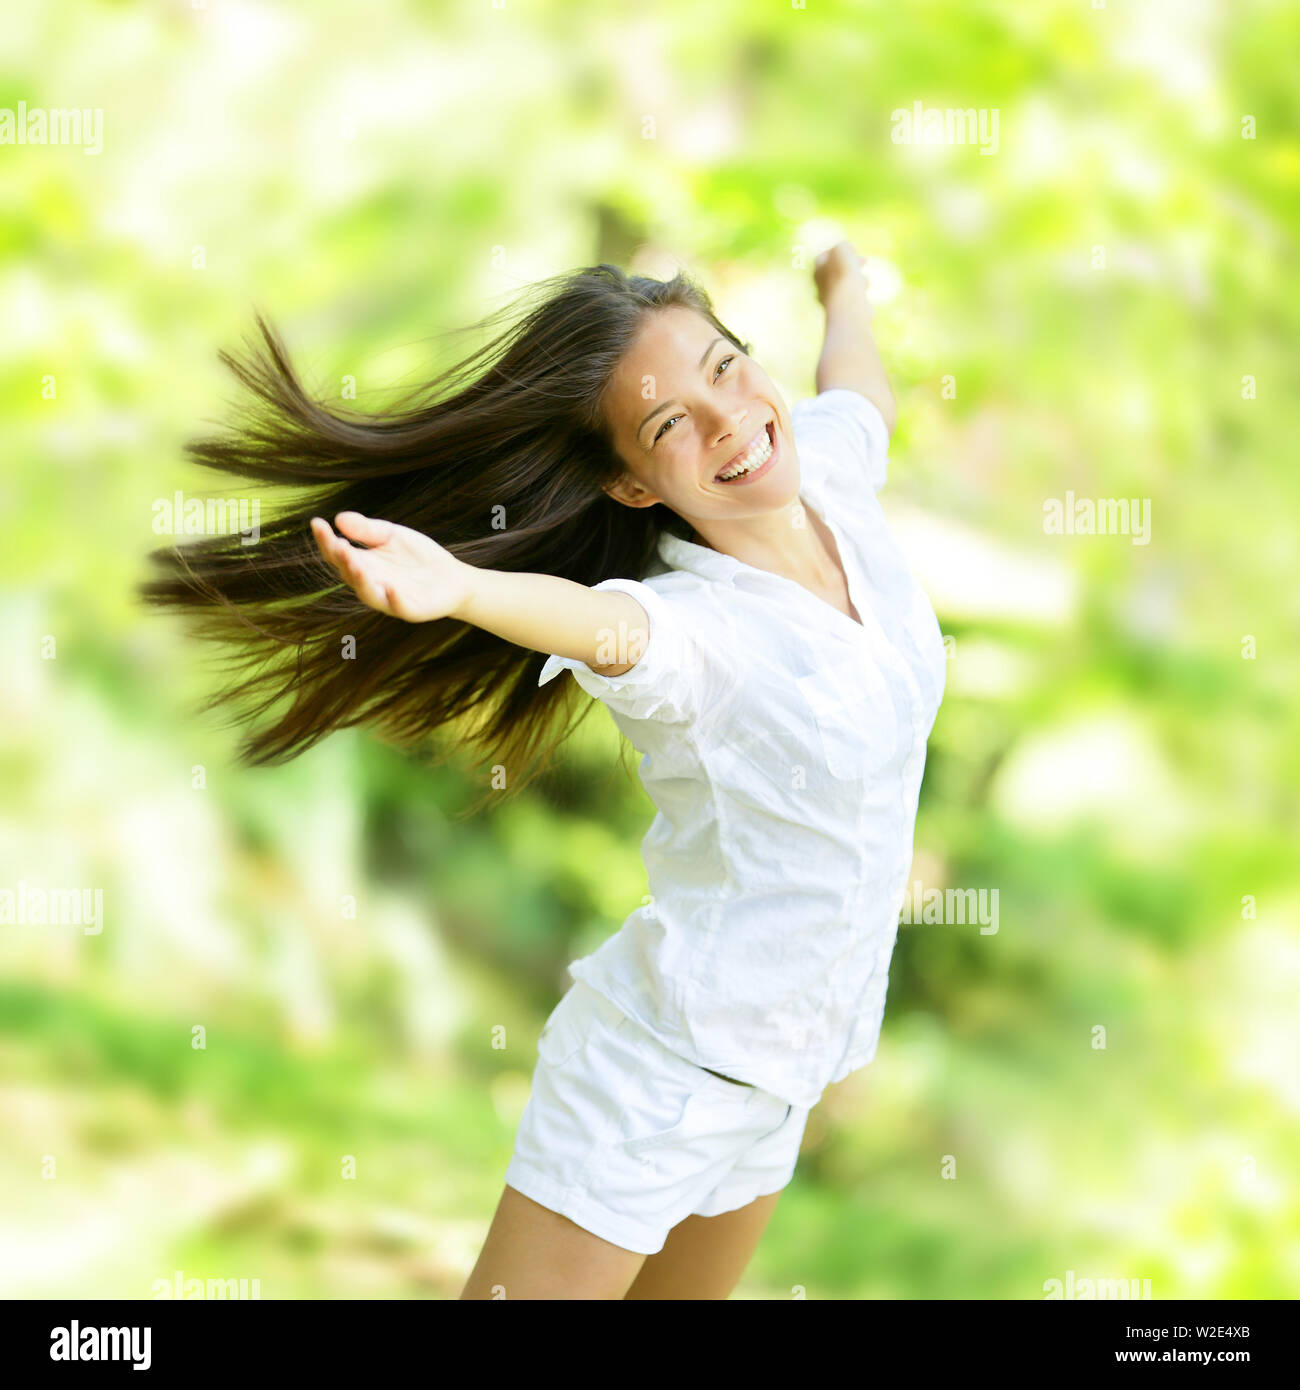 Rejoicing happy woman in flying motion smiling full of joy and vitality in summer or spring forest. Eurasian female model. - Stock Image